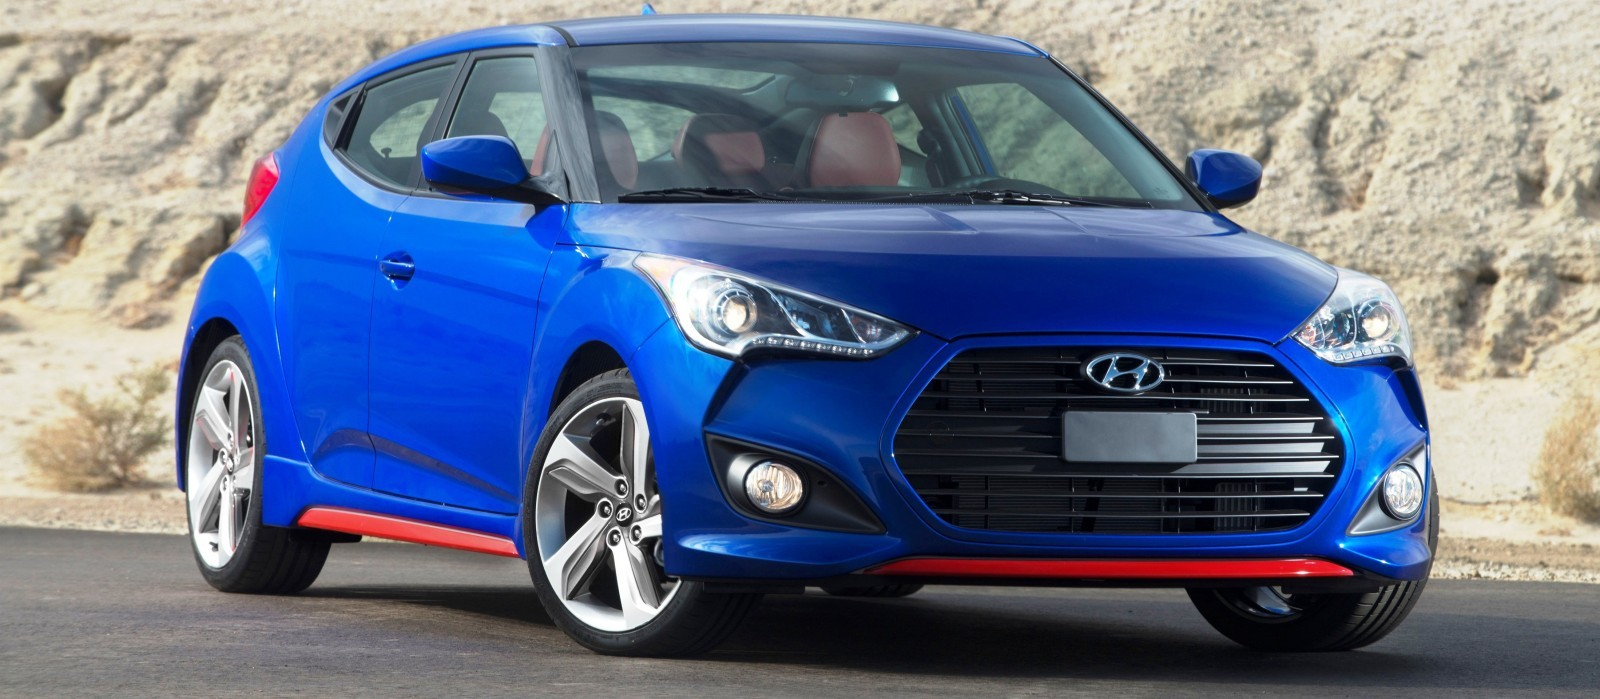 hyundai veloster r spec new for 2014 with nurburgring chassis tech car revs. Black Bedroom Furniture Sets. Home Design Ideas